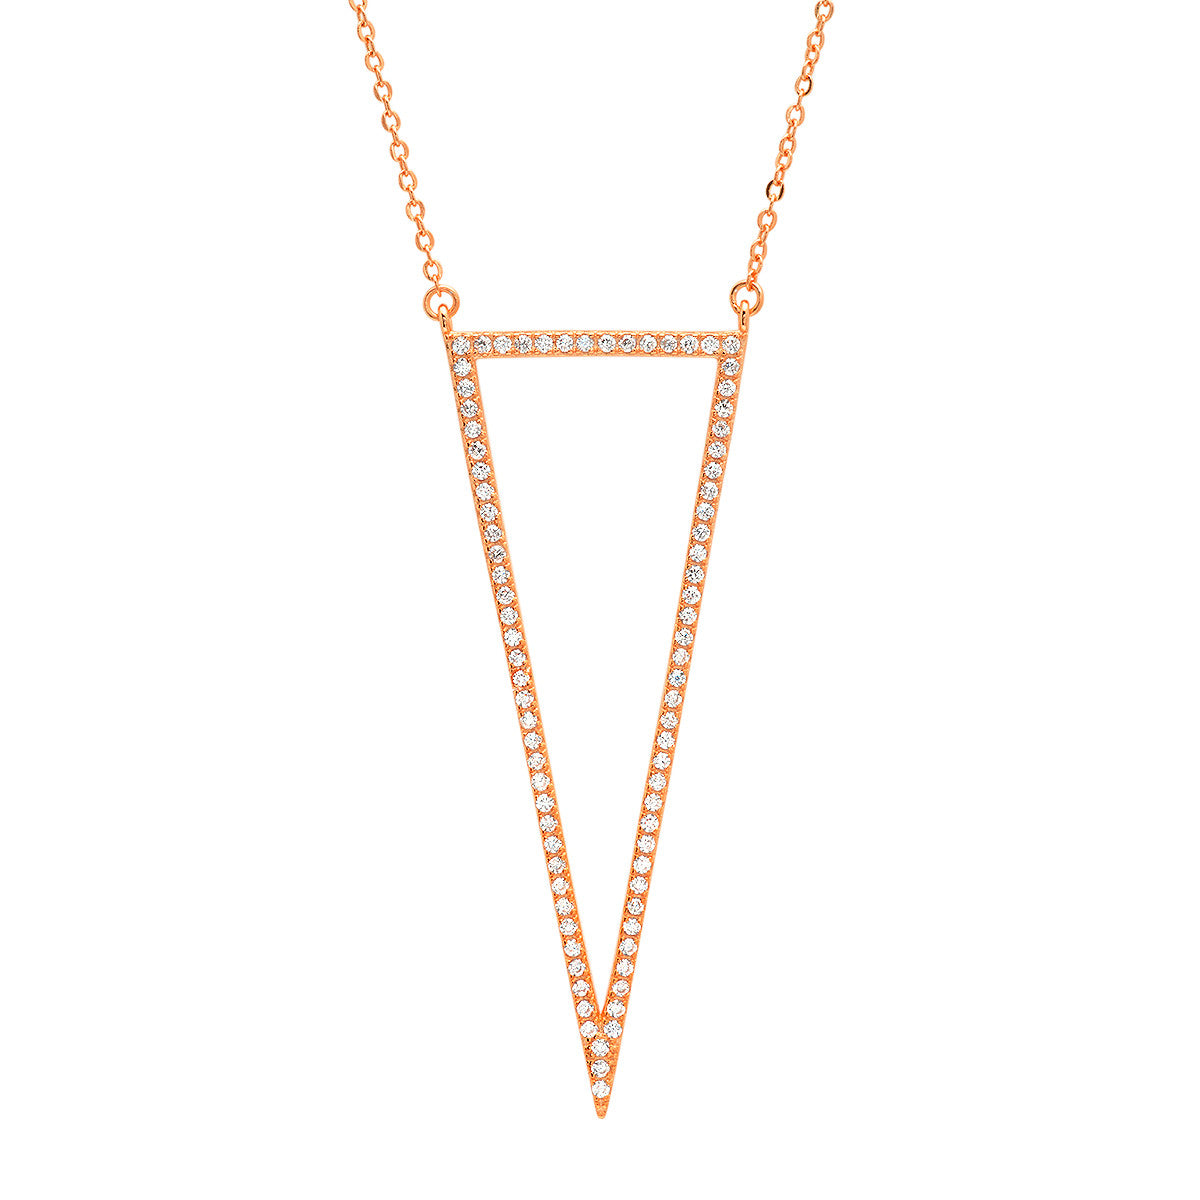 ZDN3162 STERLING SILVER 925 ROSE GOLD PLATED FINISH CZ TRIANGLE OUTLINE NECKLACE